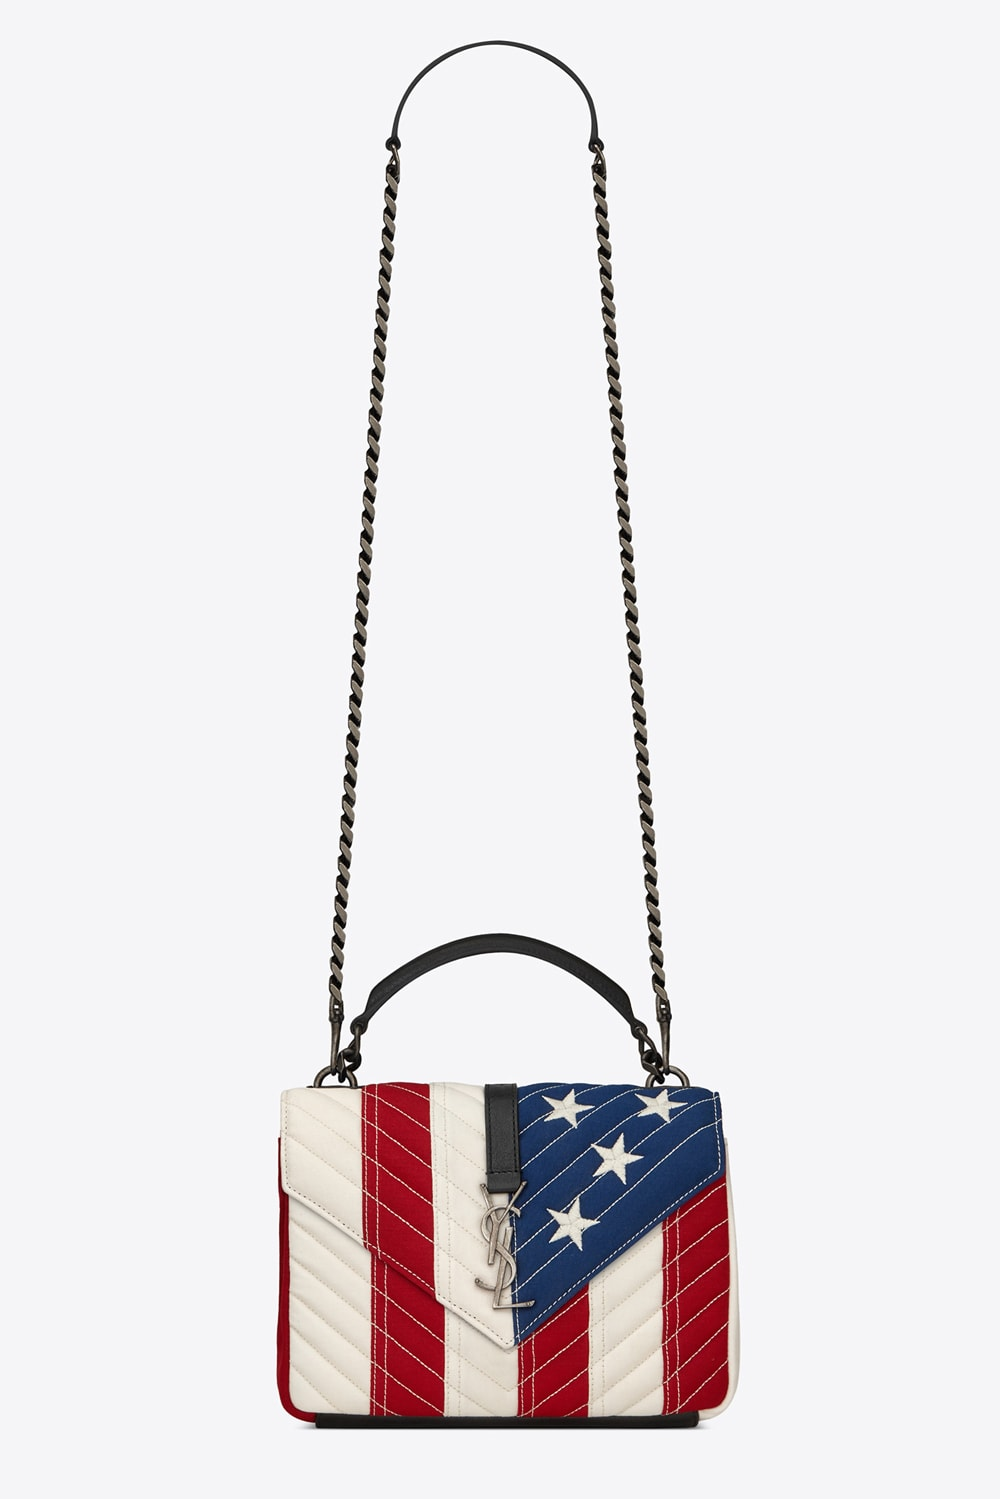 Saint Laurent's Newest Bags Are An Ode to America